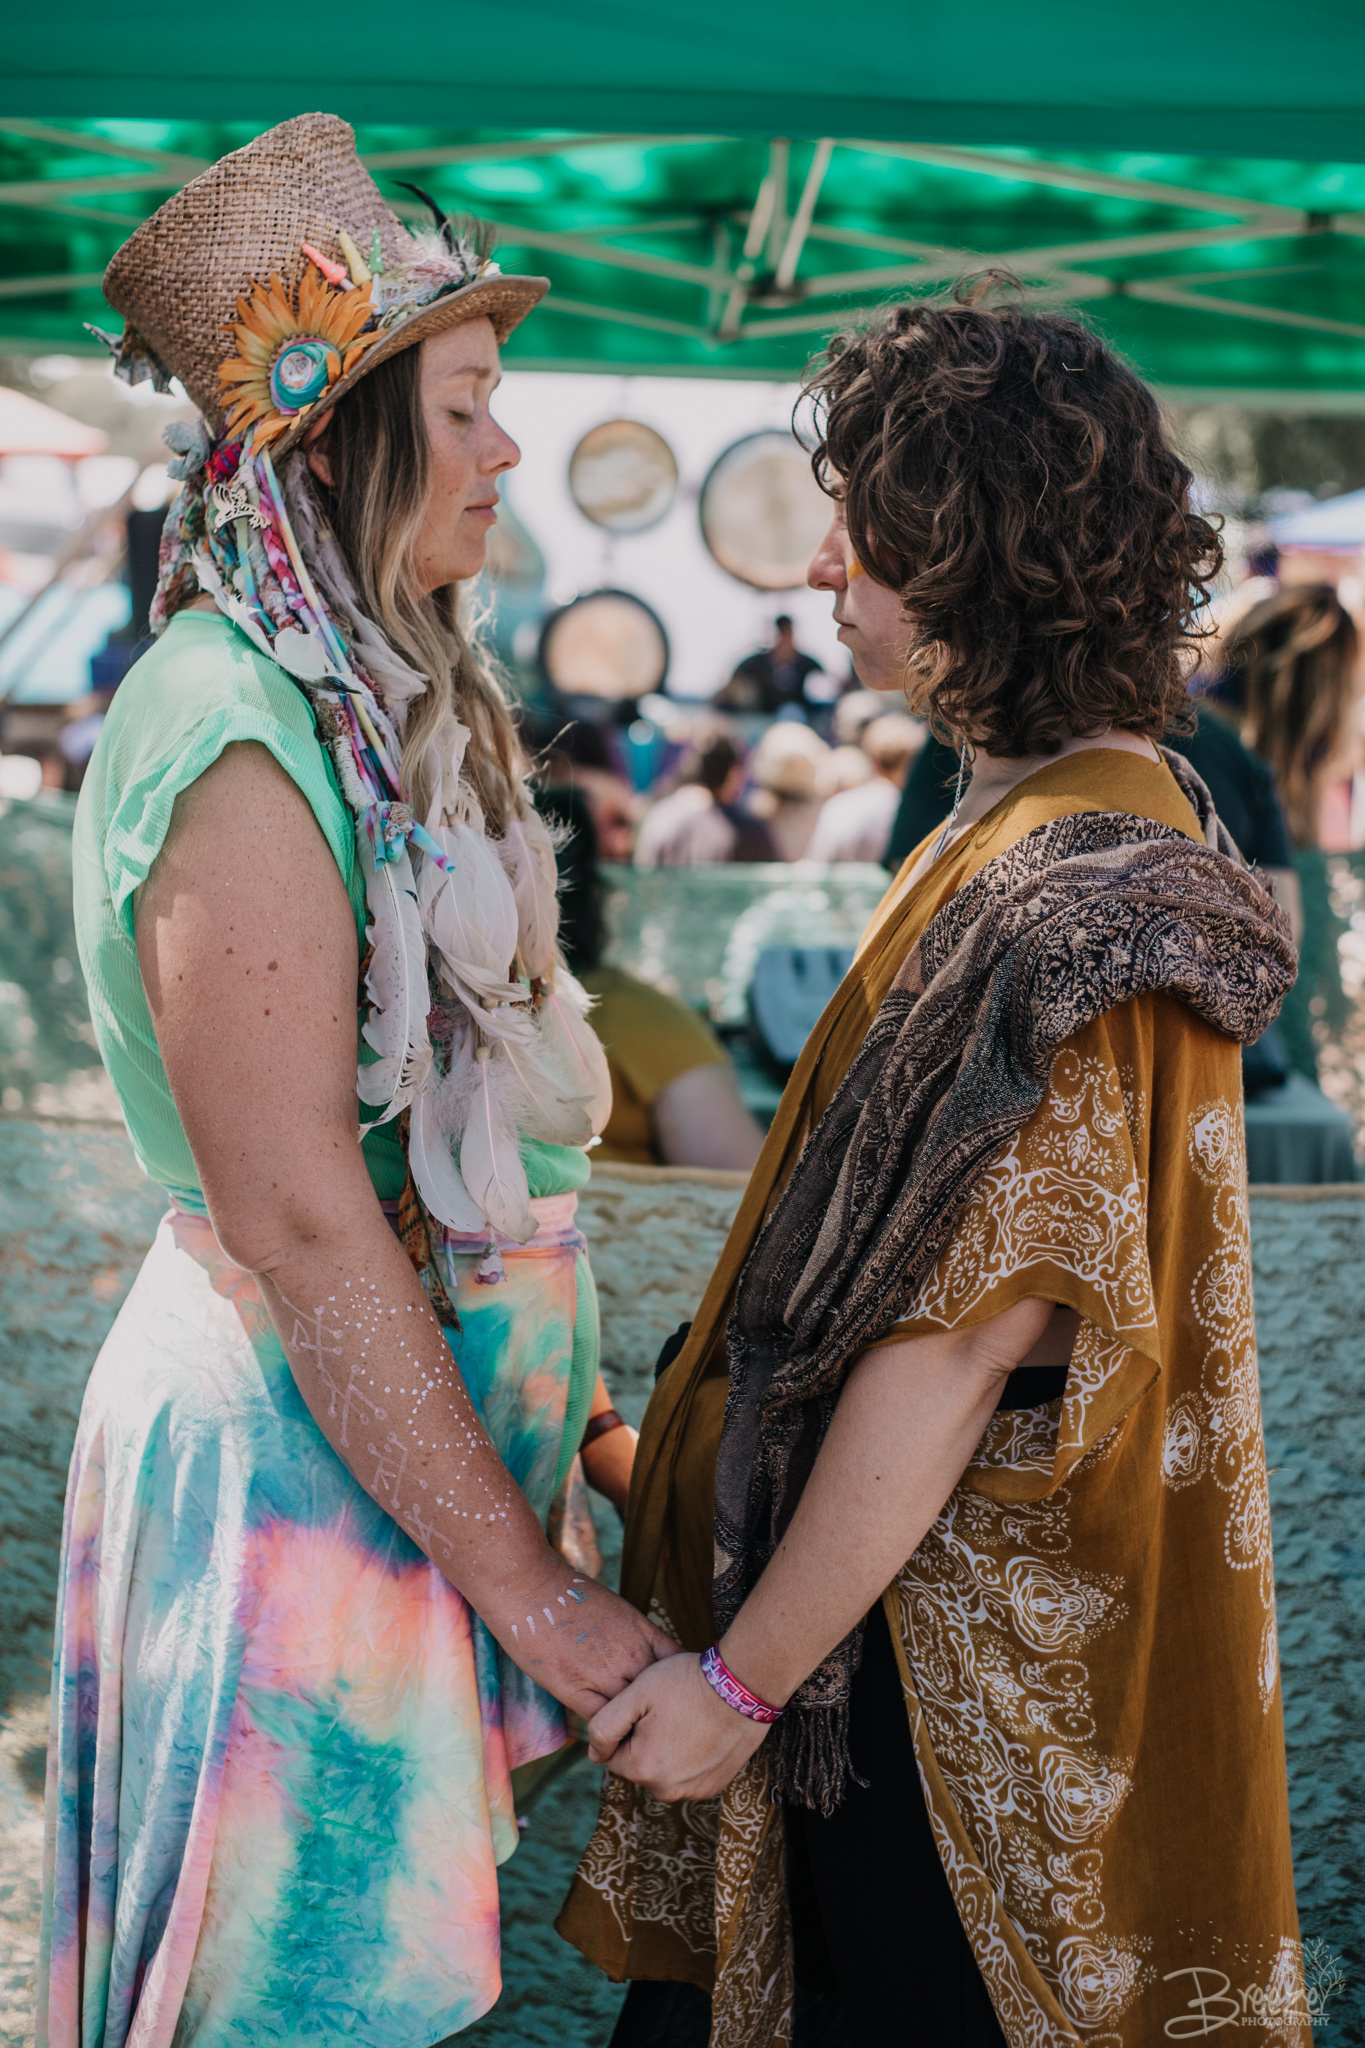 Lucidity.Festival.2019.Brie'Ana Breeze Photography and Media-6708.jpg